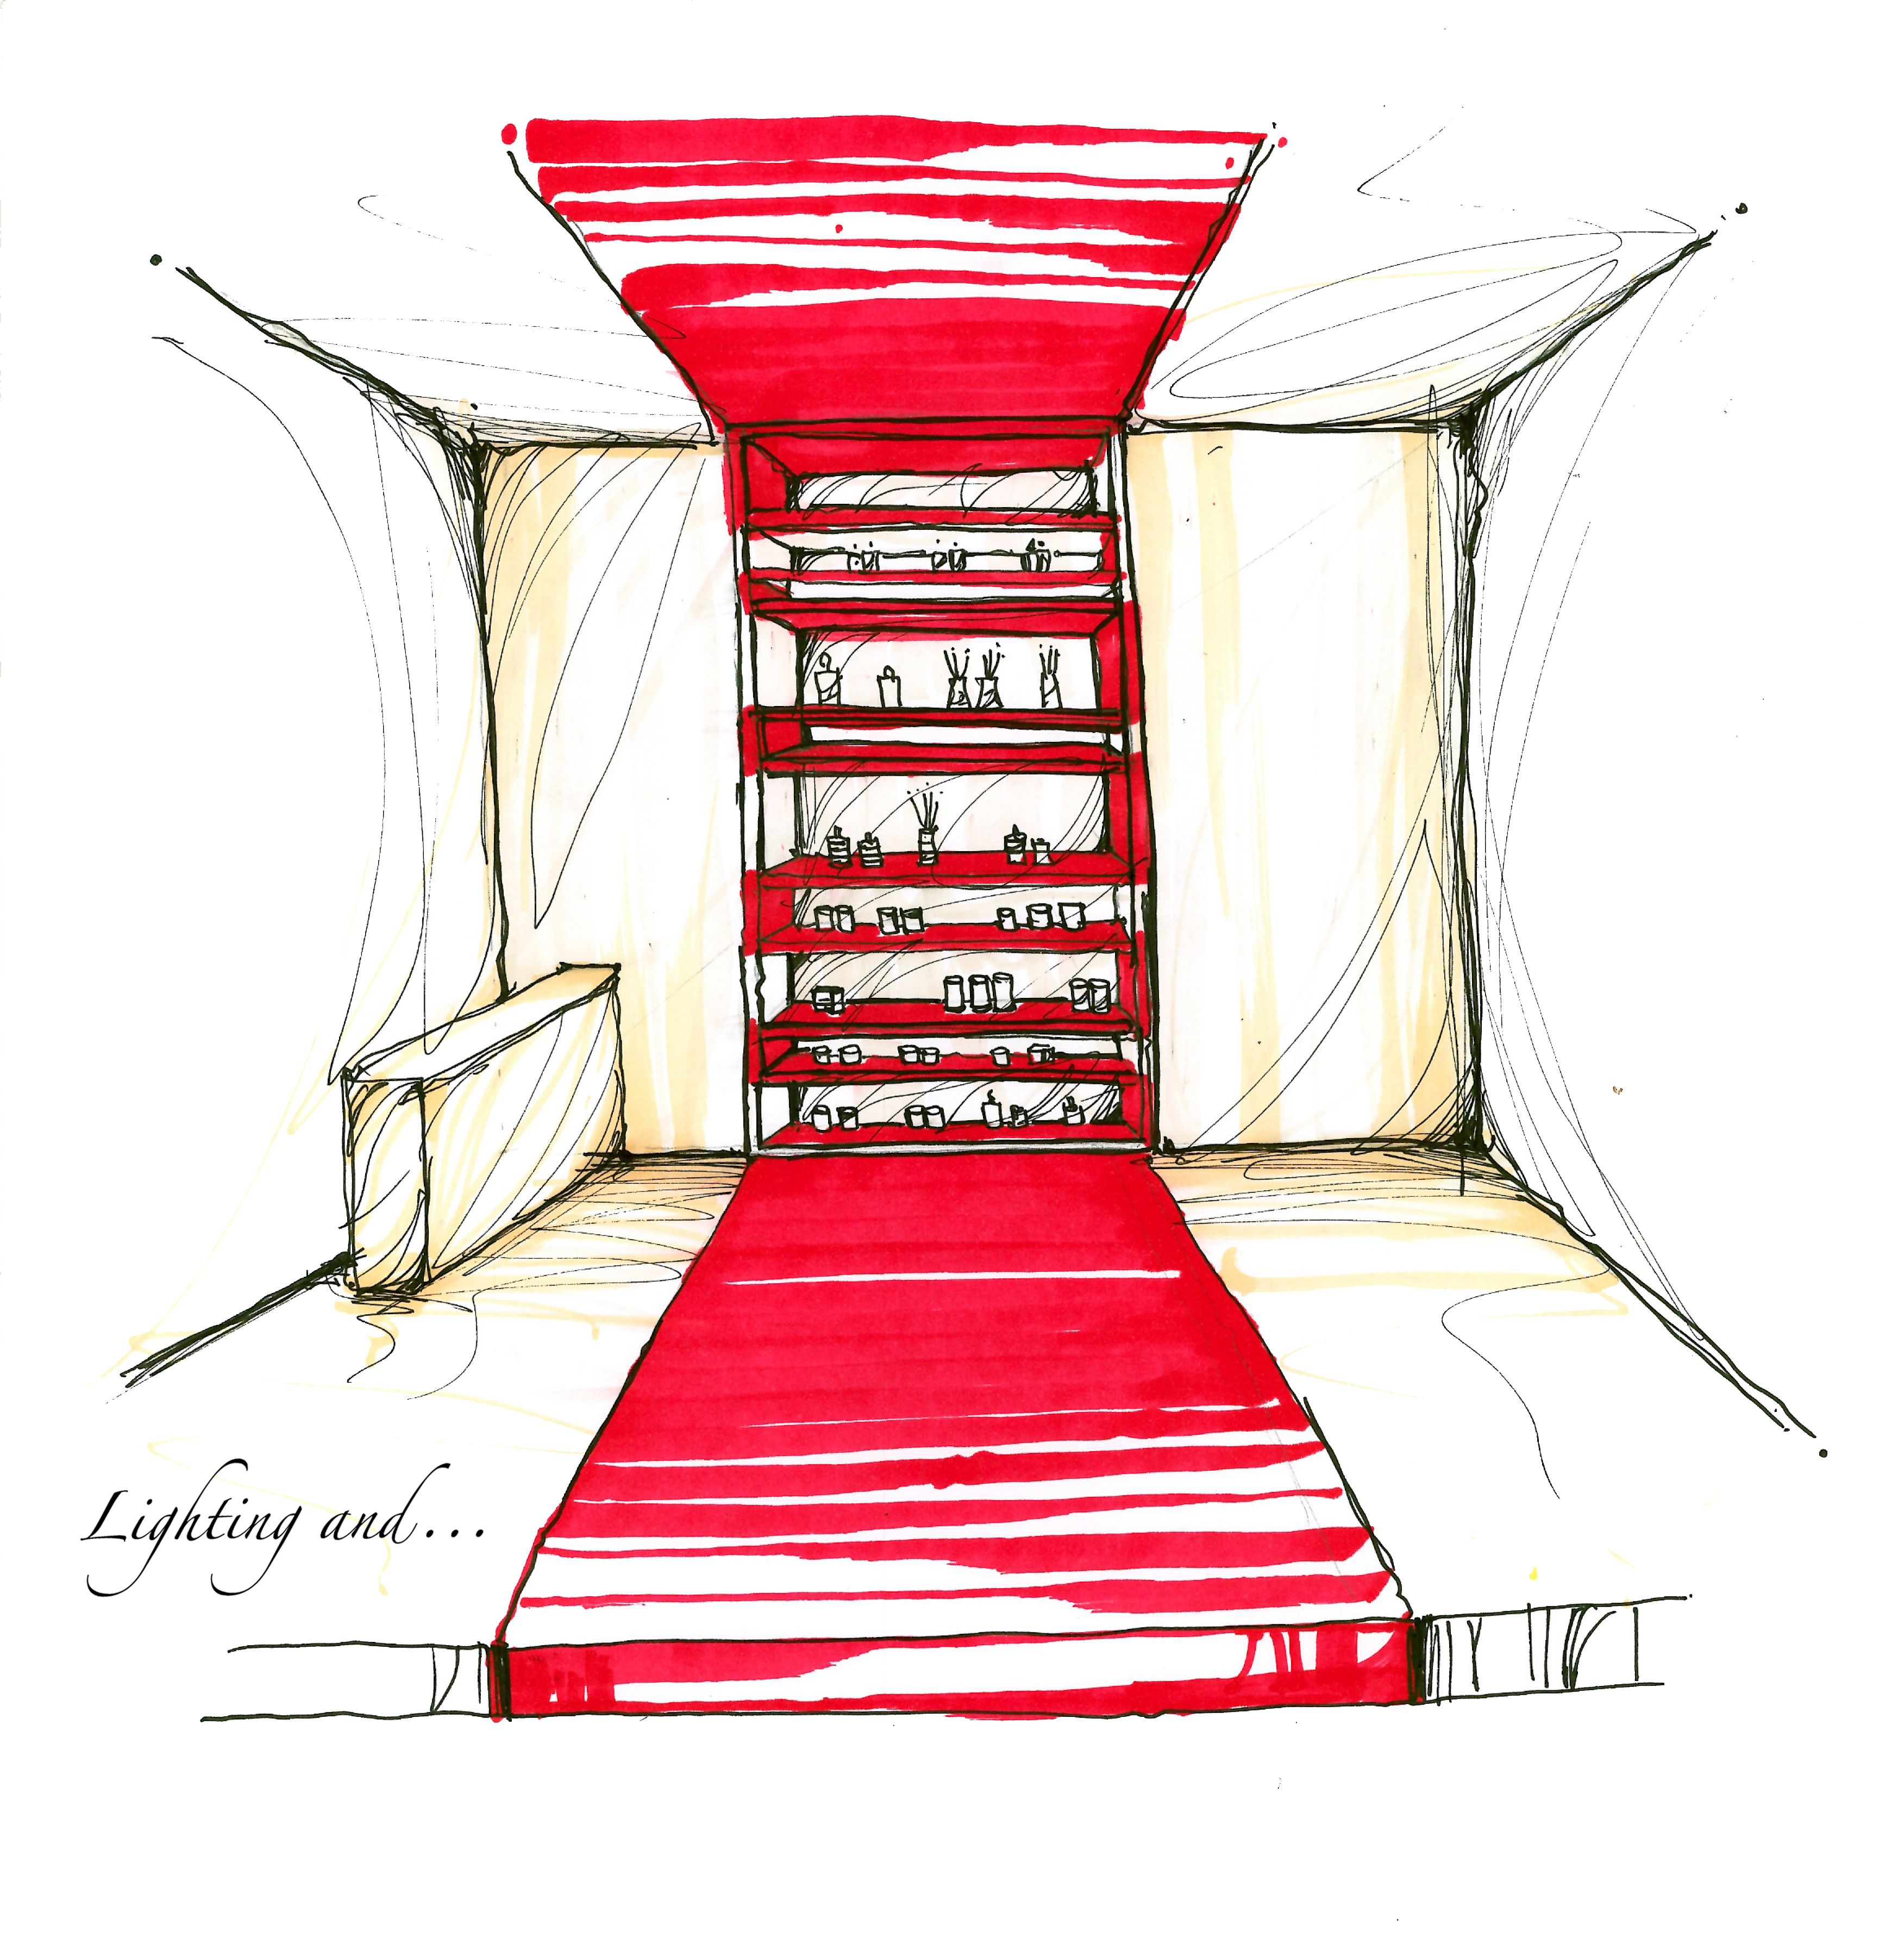 Fast hand sketch to present our ideas at the moment for the interior design . #sketch #schizzo #luce #light #dessiner #design #disegno #colors #colori #conception #lumière #handsketch #milano #italia #italy #color #colori #retail #negozio #lightingand #fast #veloce